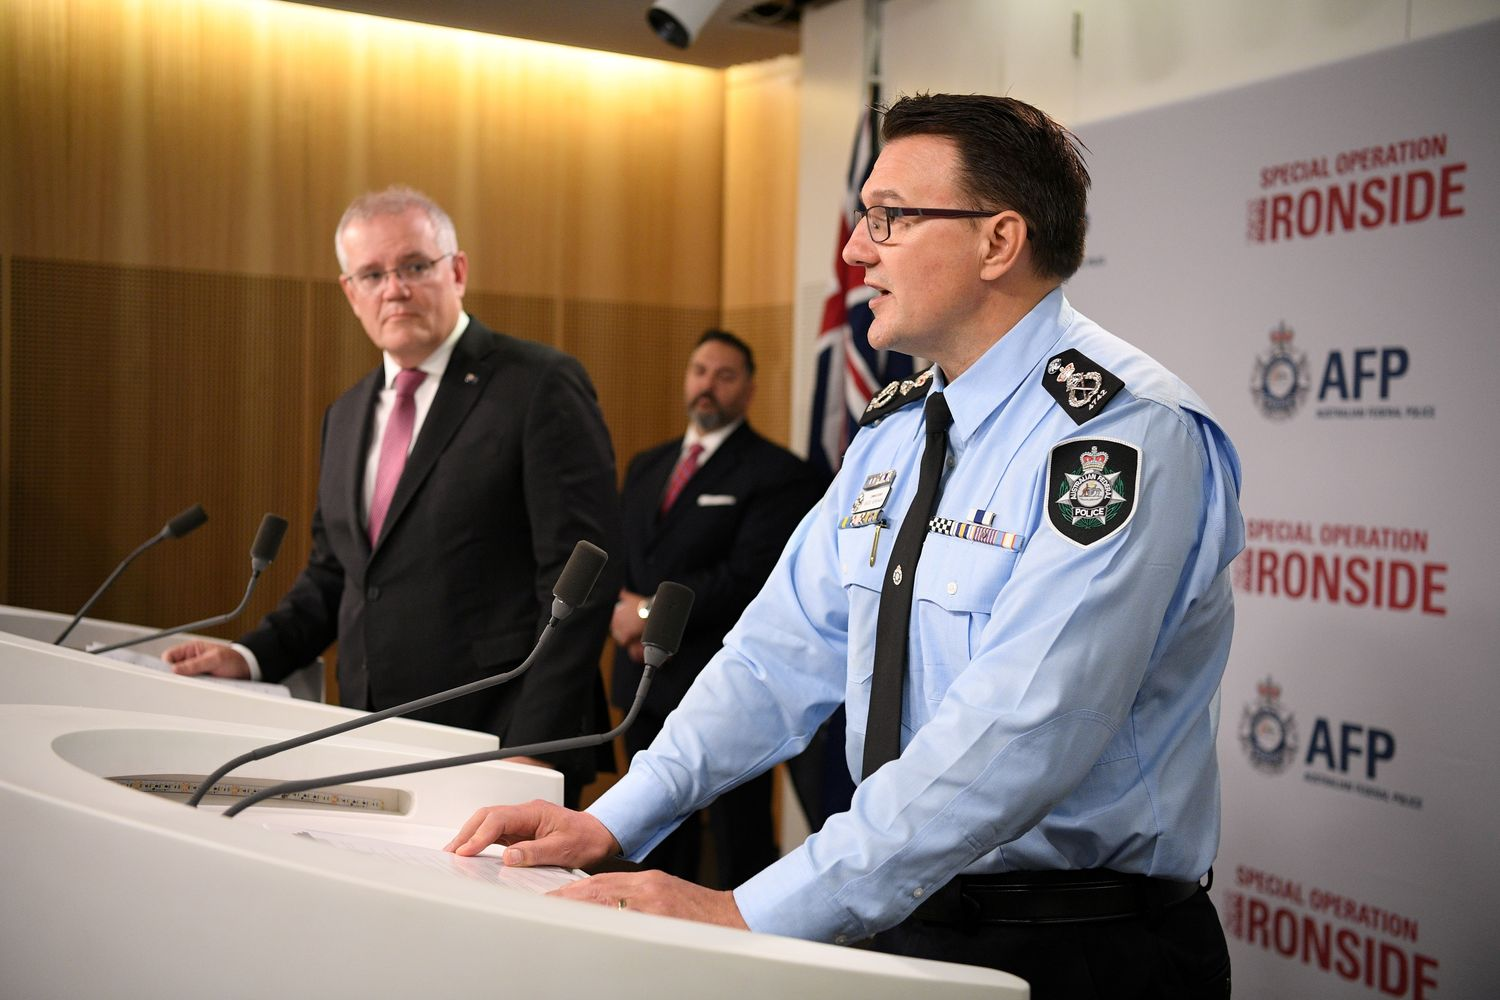 Australian Federal Police Commissioner Reece Kershaw speaks as Australian Prime Minister Scott Morrison looks on during a media briefing about Operation Ironside, which disrupts organised crime internationally, in Sydney on Tuesday. (AAP Image/Dean Lewins via Reuters)